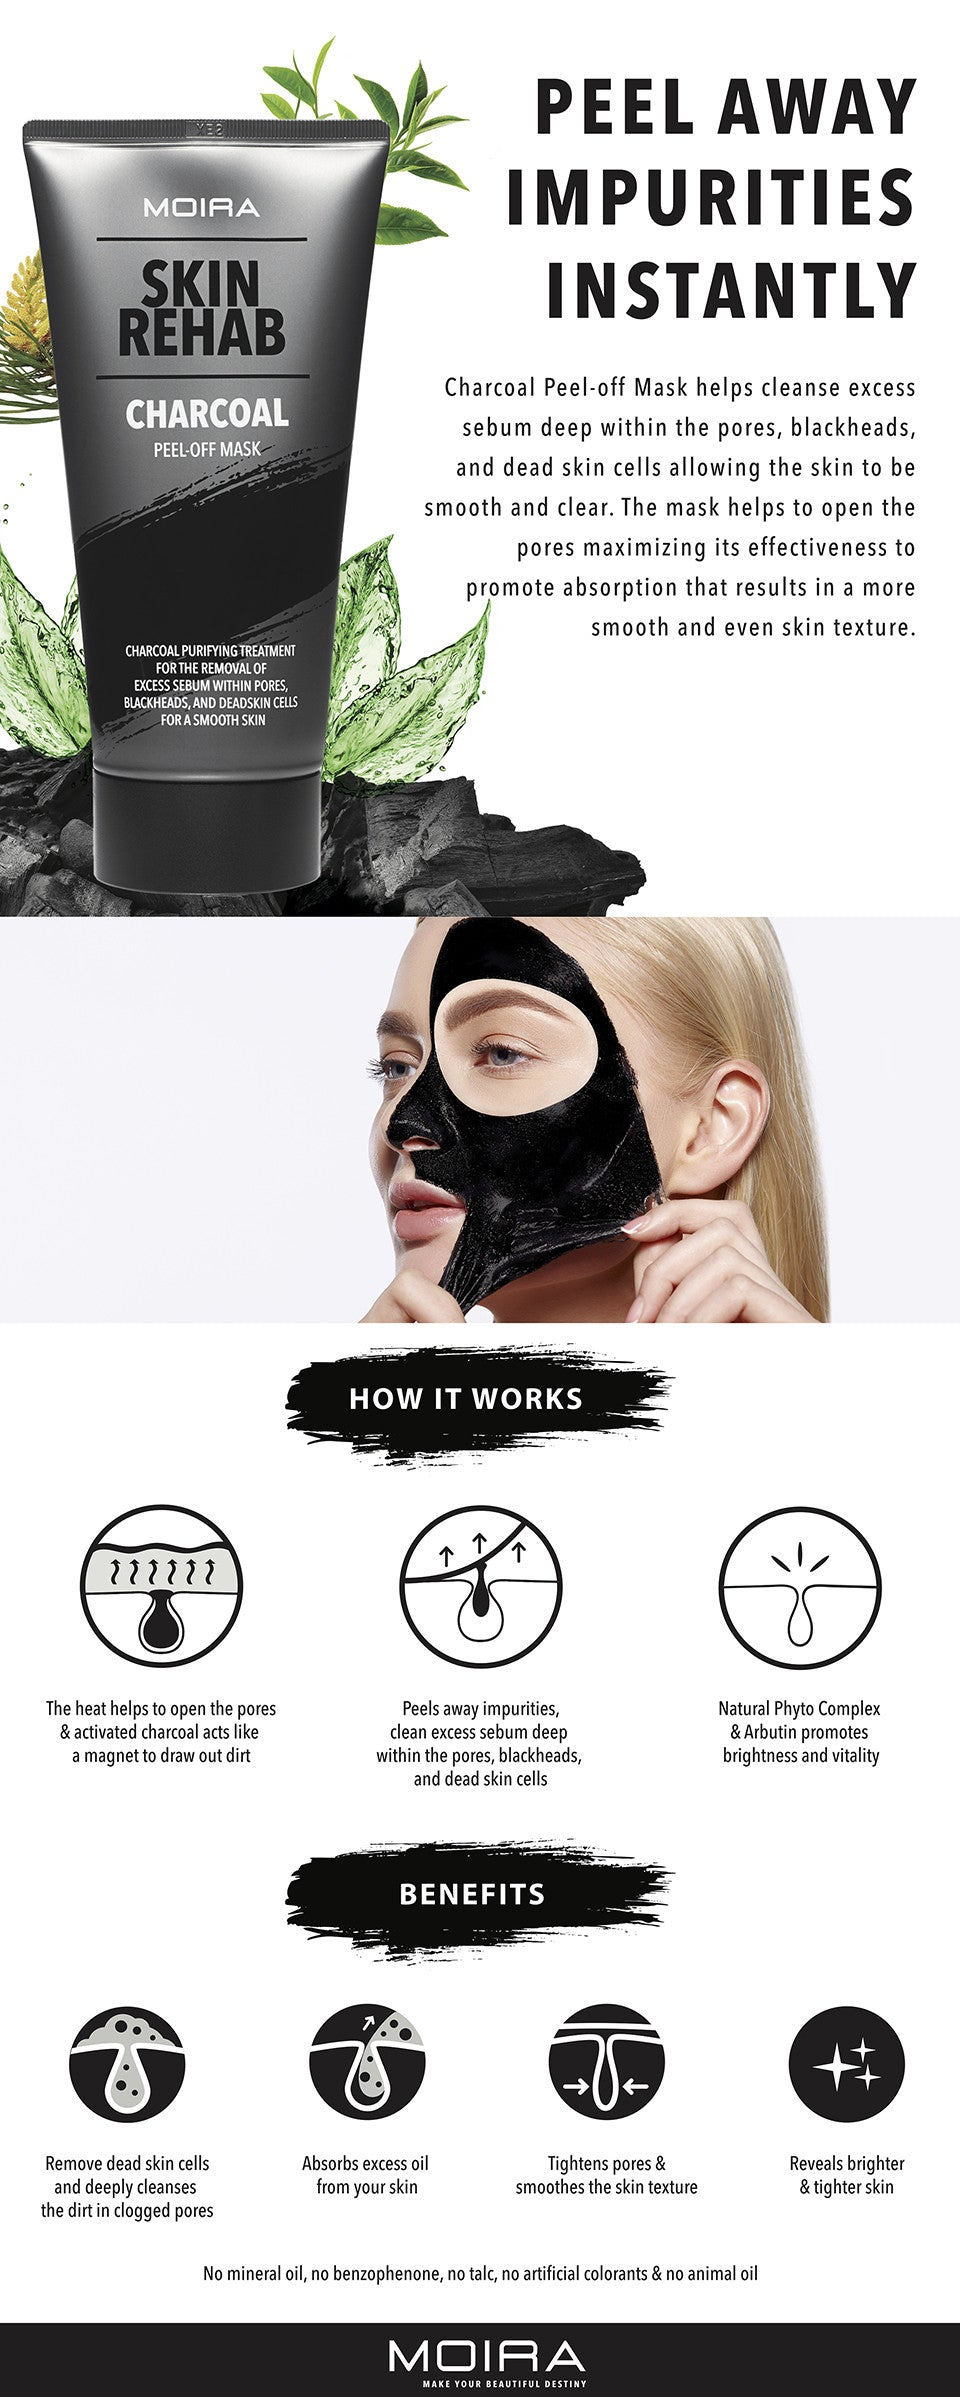 MOIRA Skin Rehab Charcoal Peel-Off Mask